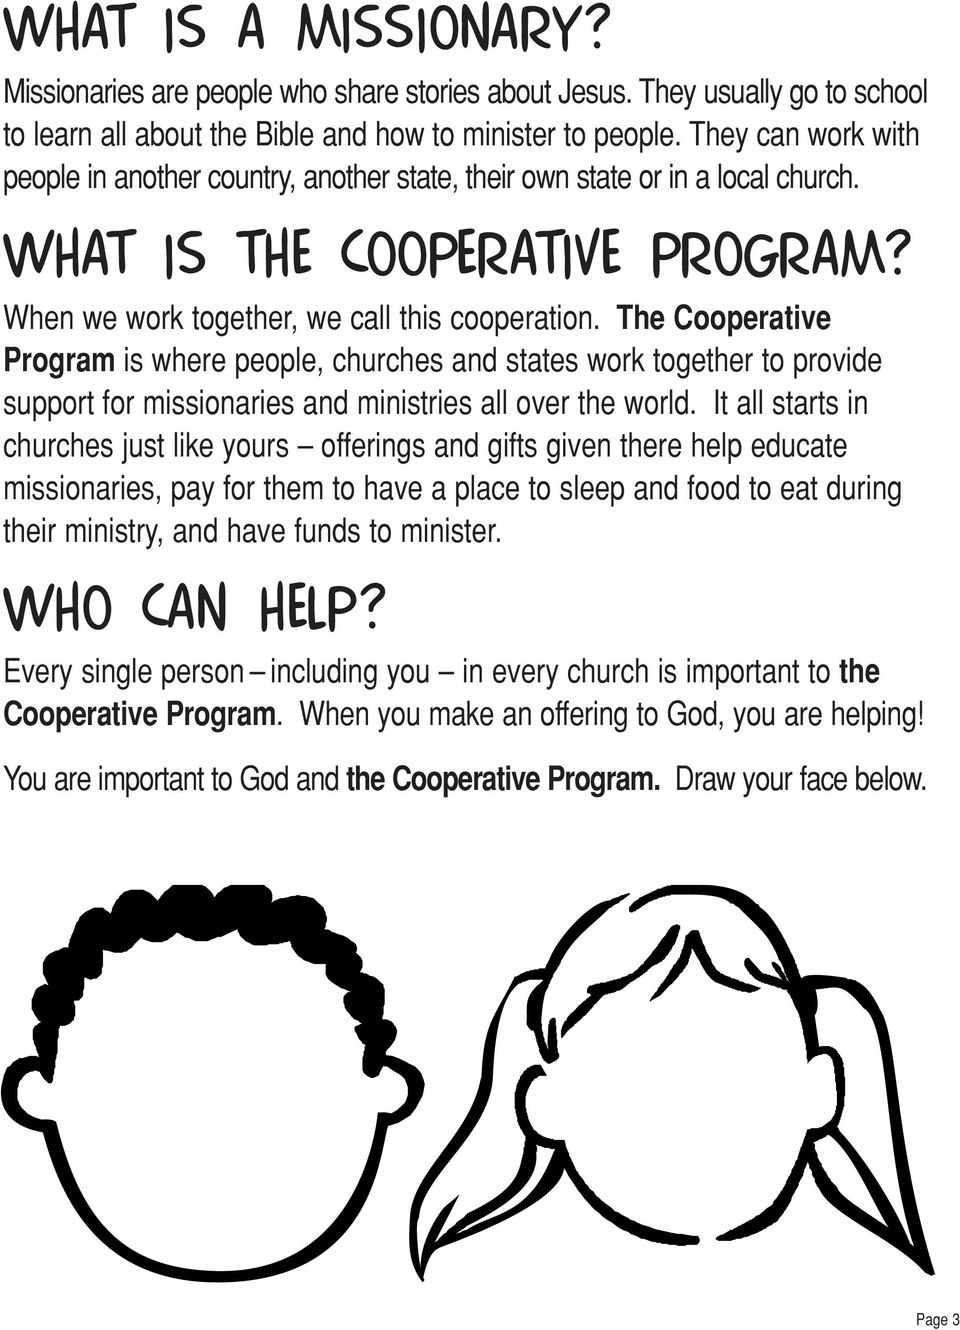 The Cooperative Program is where people, churches and states work together to provide support for missionaries and ministries all over the world.